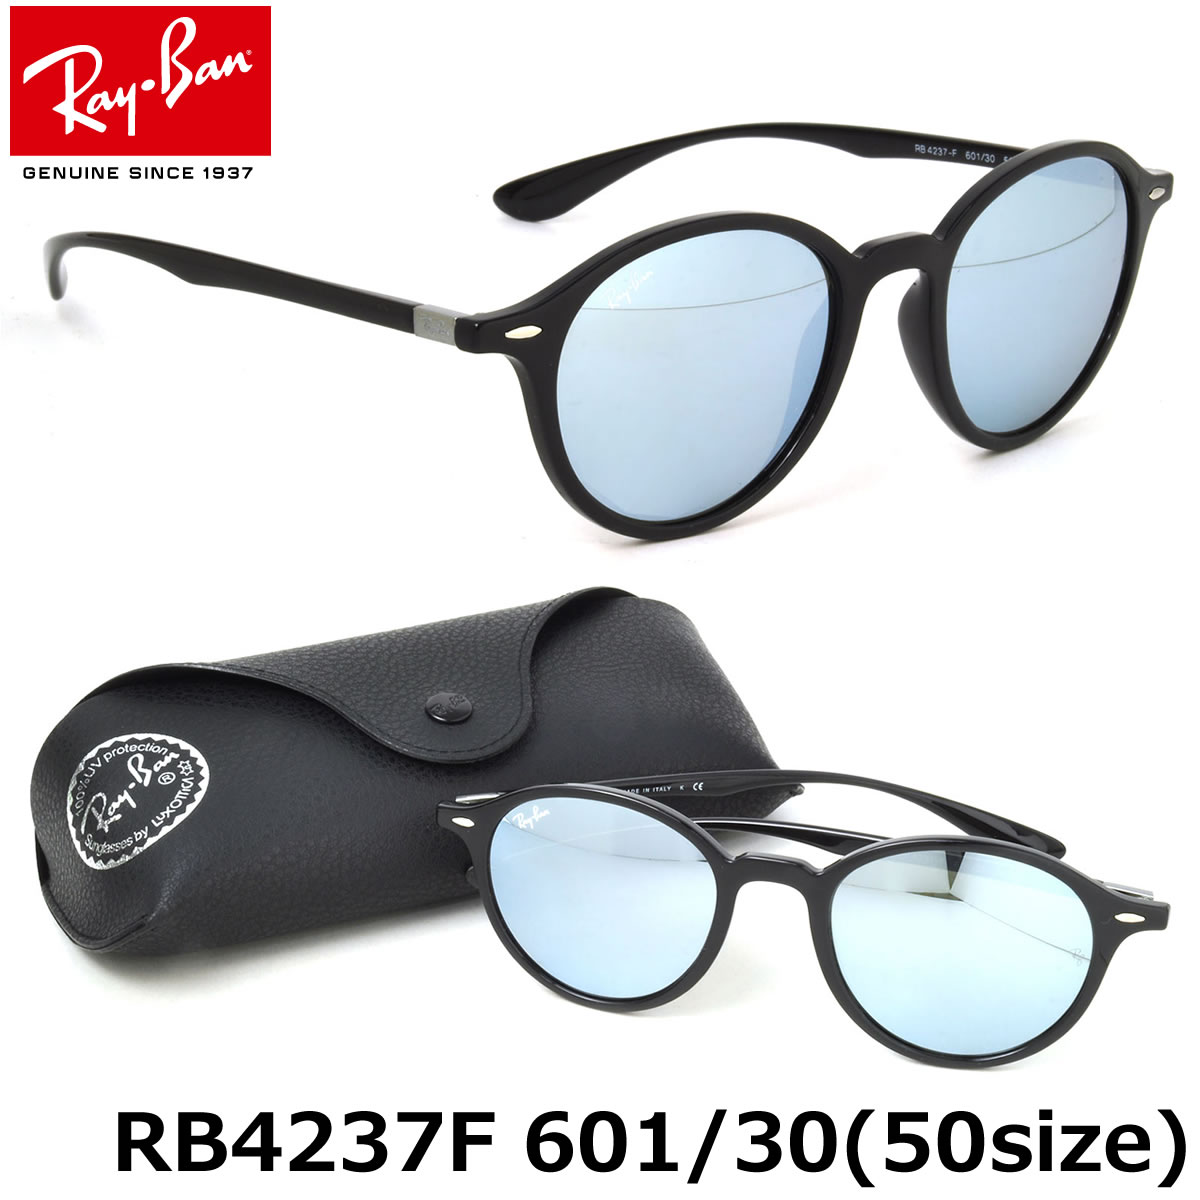 95bd183e9a It is the model who crossed an advanced technique of Ray-Ban and the  fashion of the fashion world. This model is made with the thermoplastic  material which ...